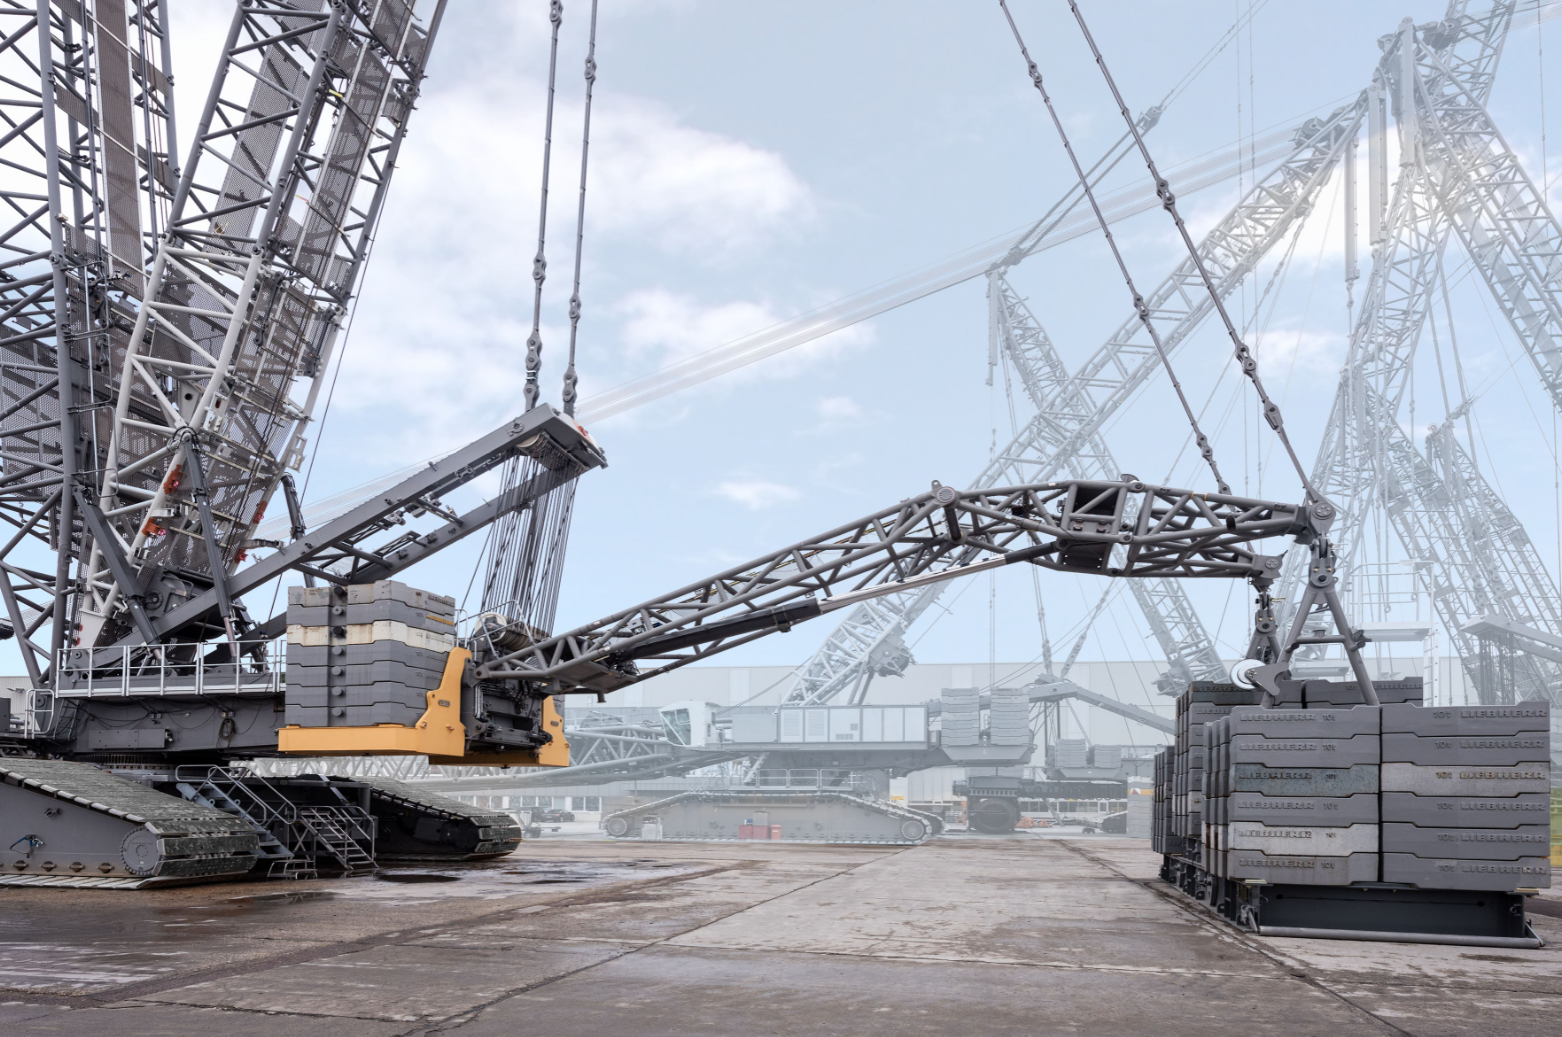 Liebherr's new crawler crane proved with 560-tonne test load – Heavy